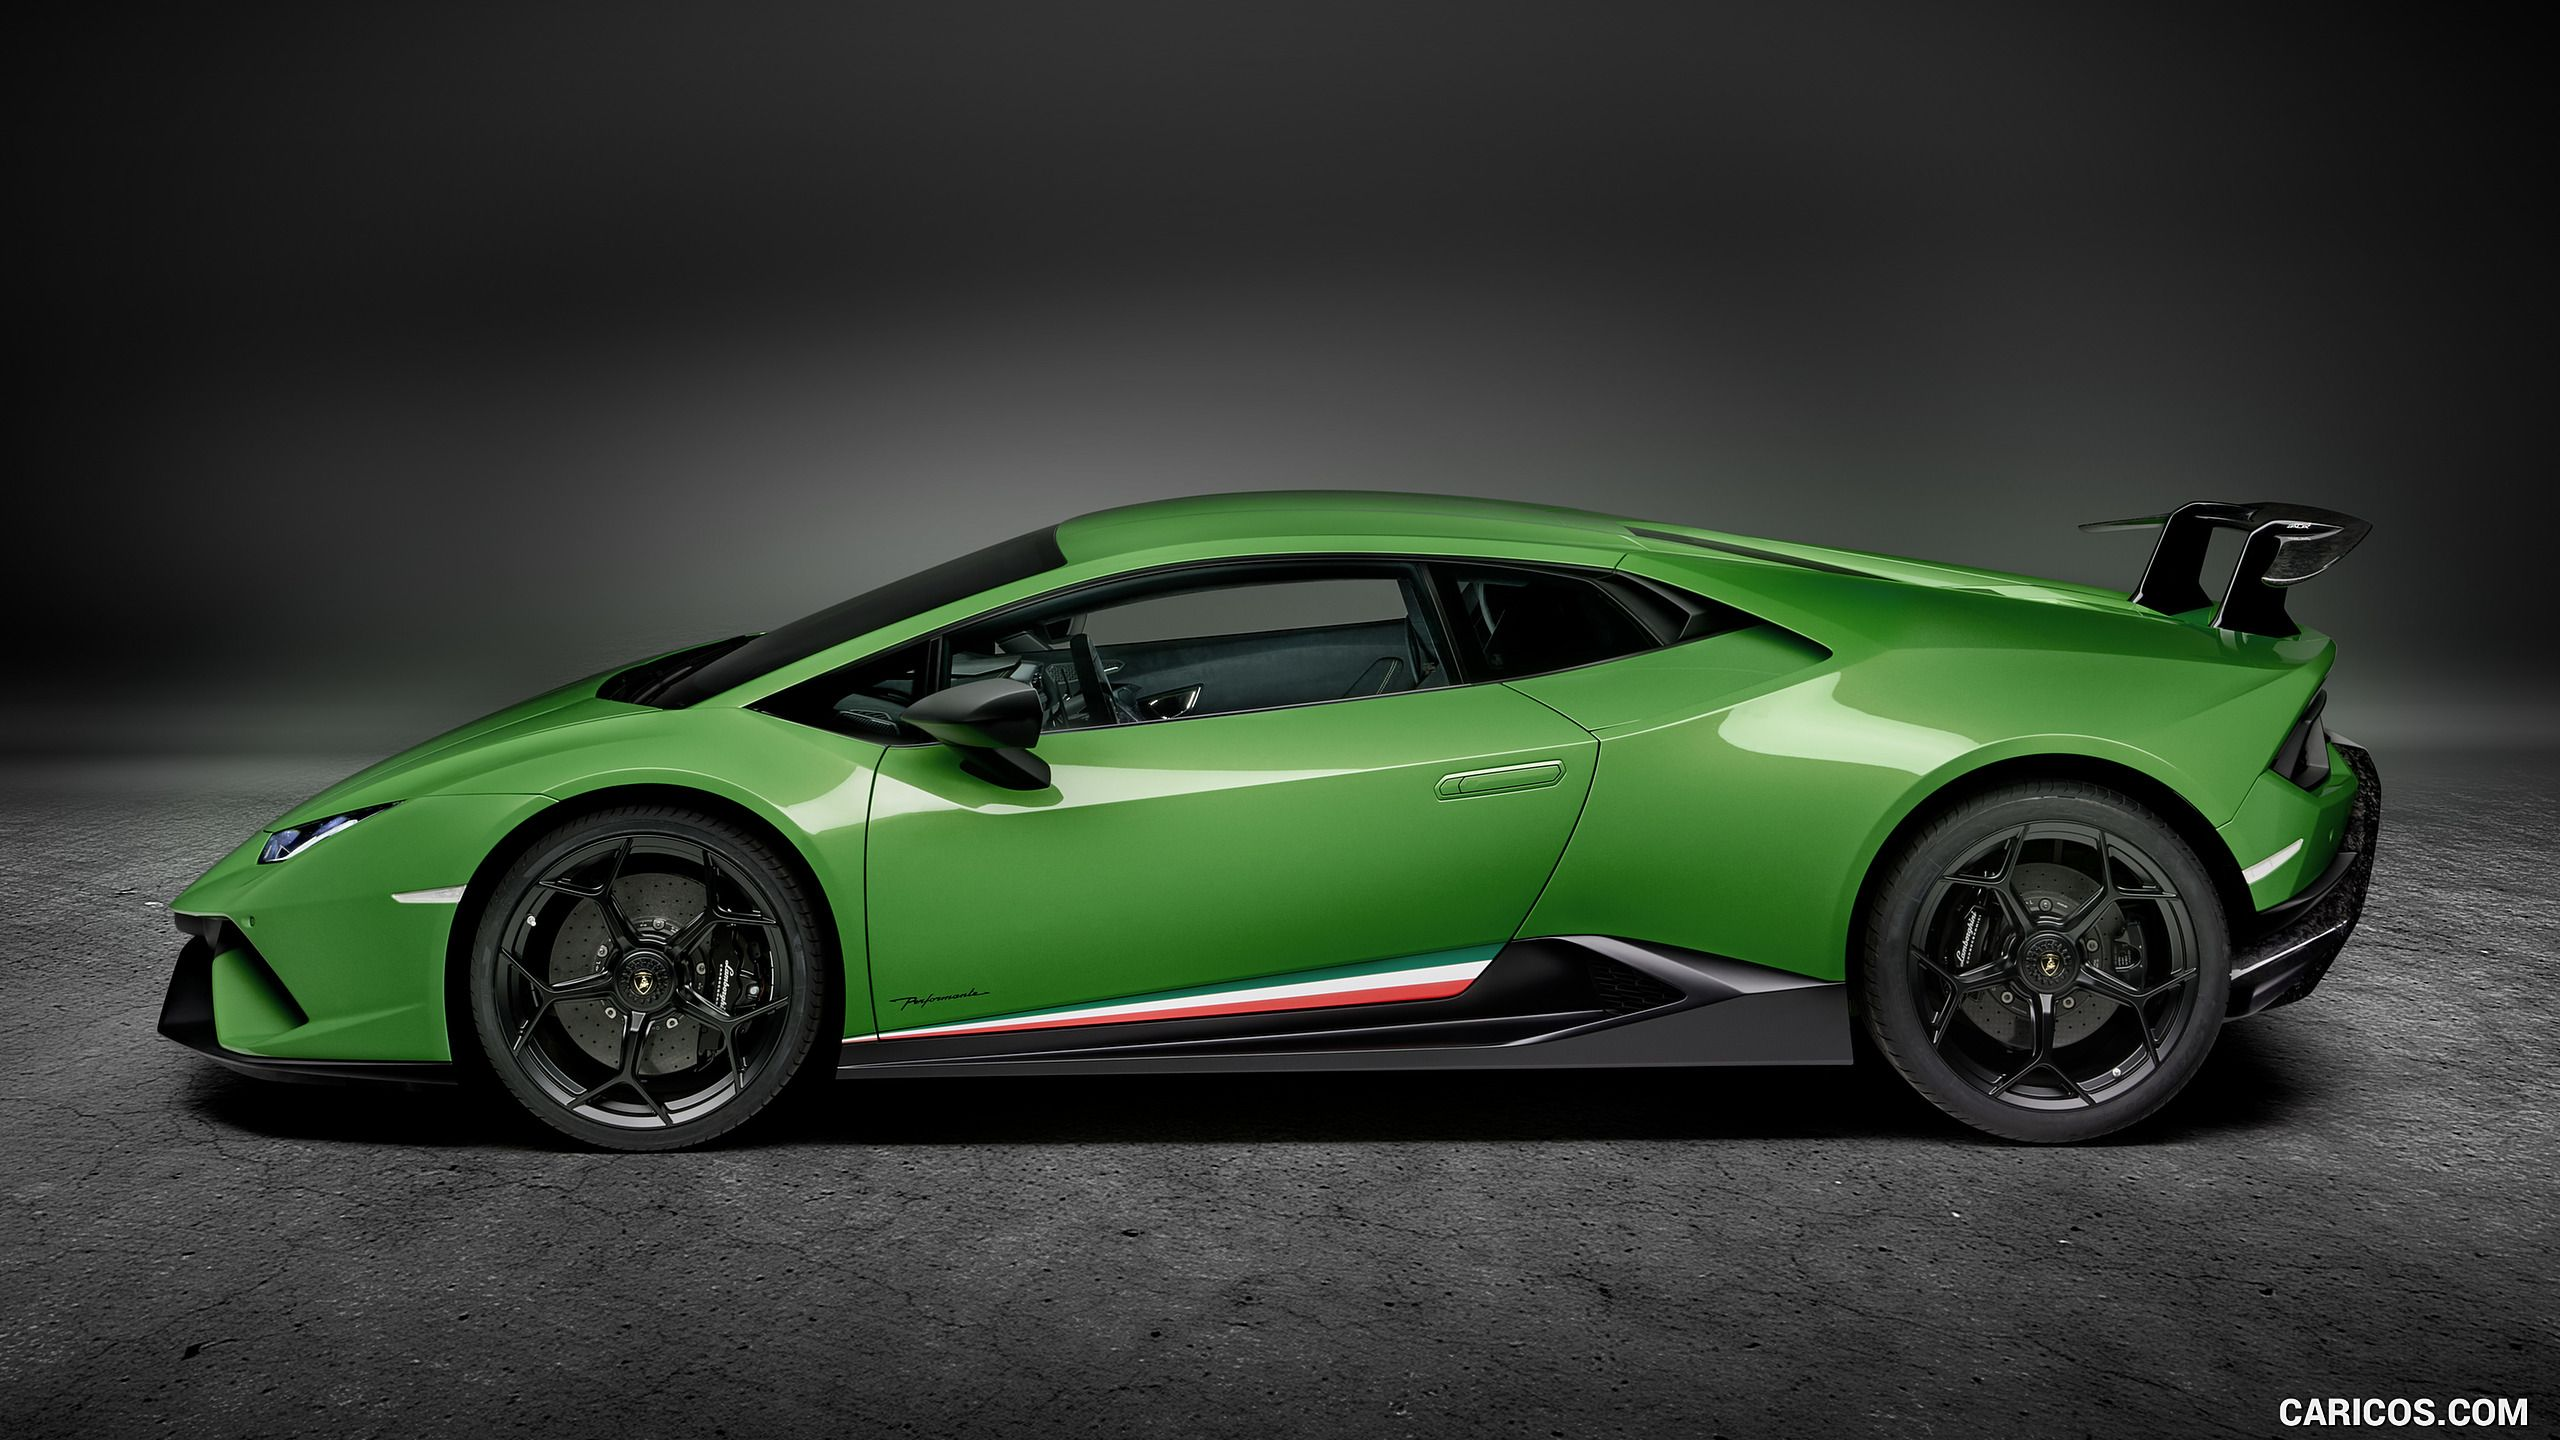 Lamborghini Huracan Performante Wallpaper